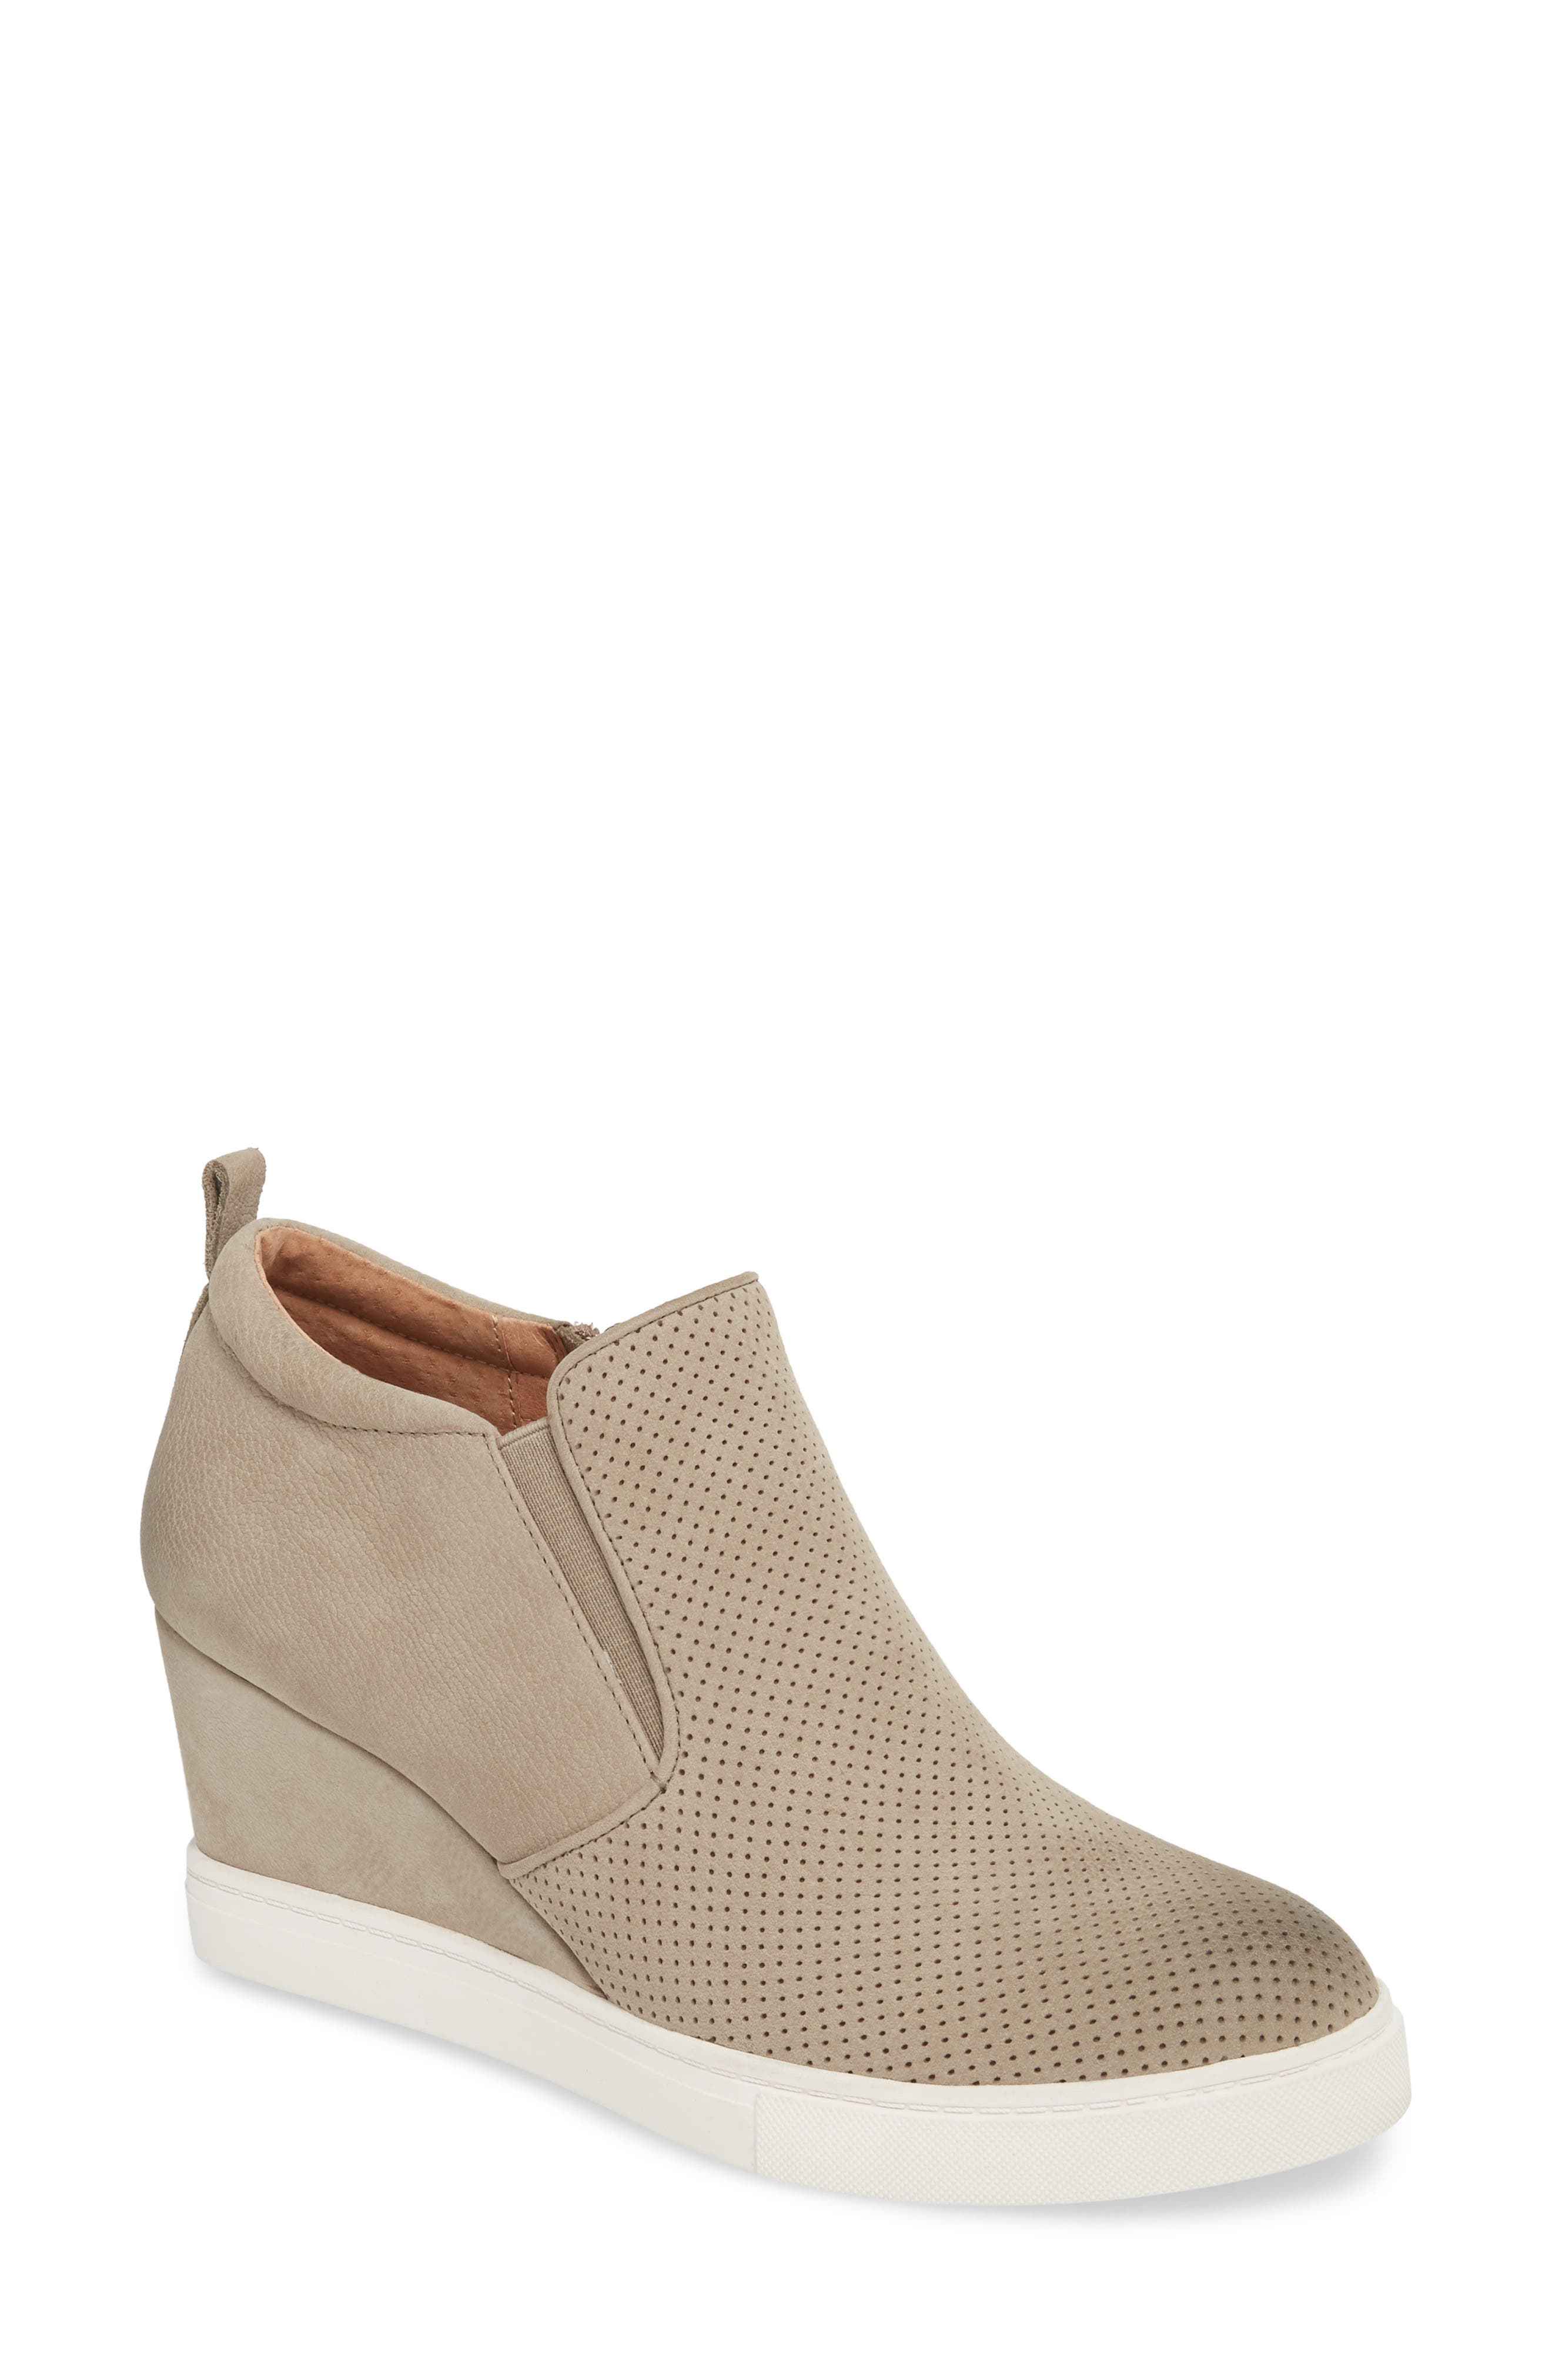 Aiden Wedge Sneaker, Main, color, 260